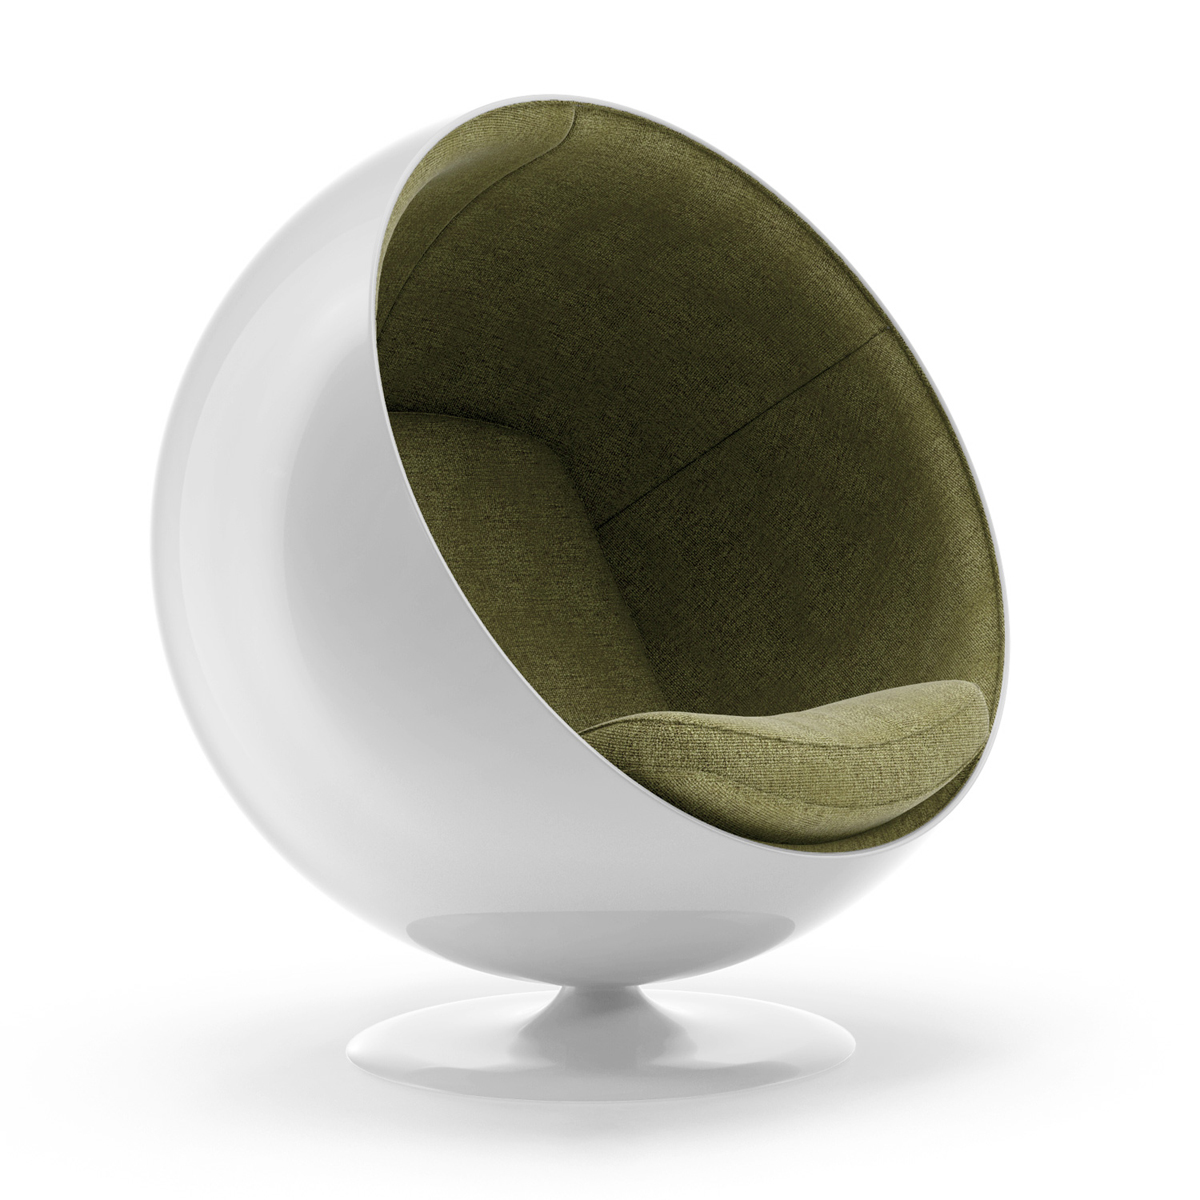 Phenomenal Eero Aarnio Ball Chair Short Links Chair Design For Home Short Linksinfo